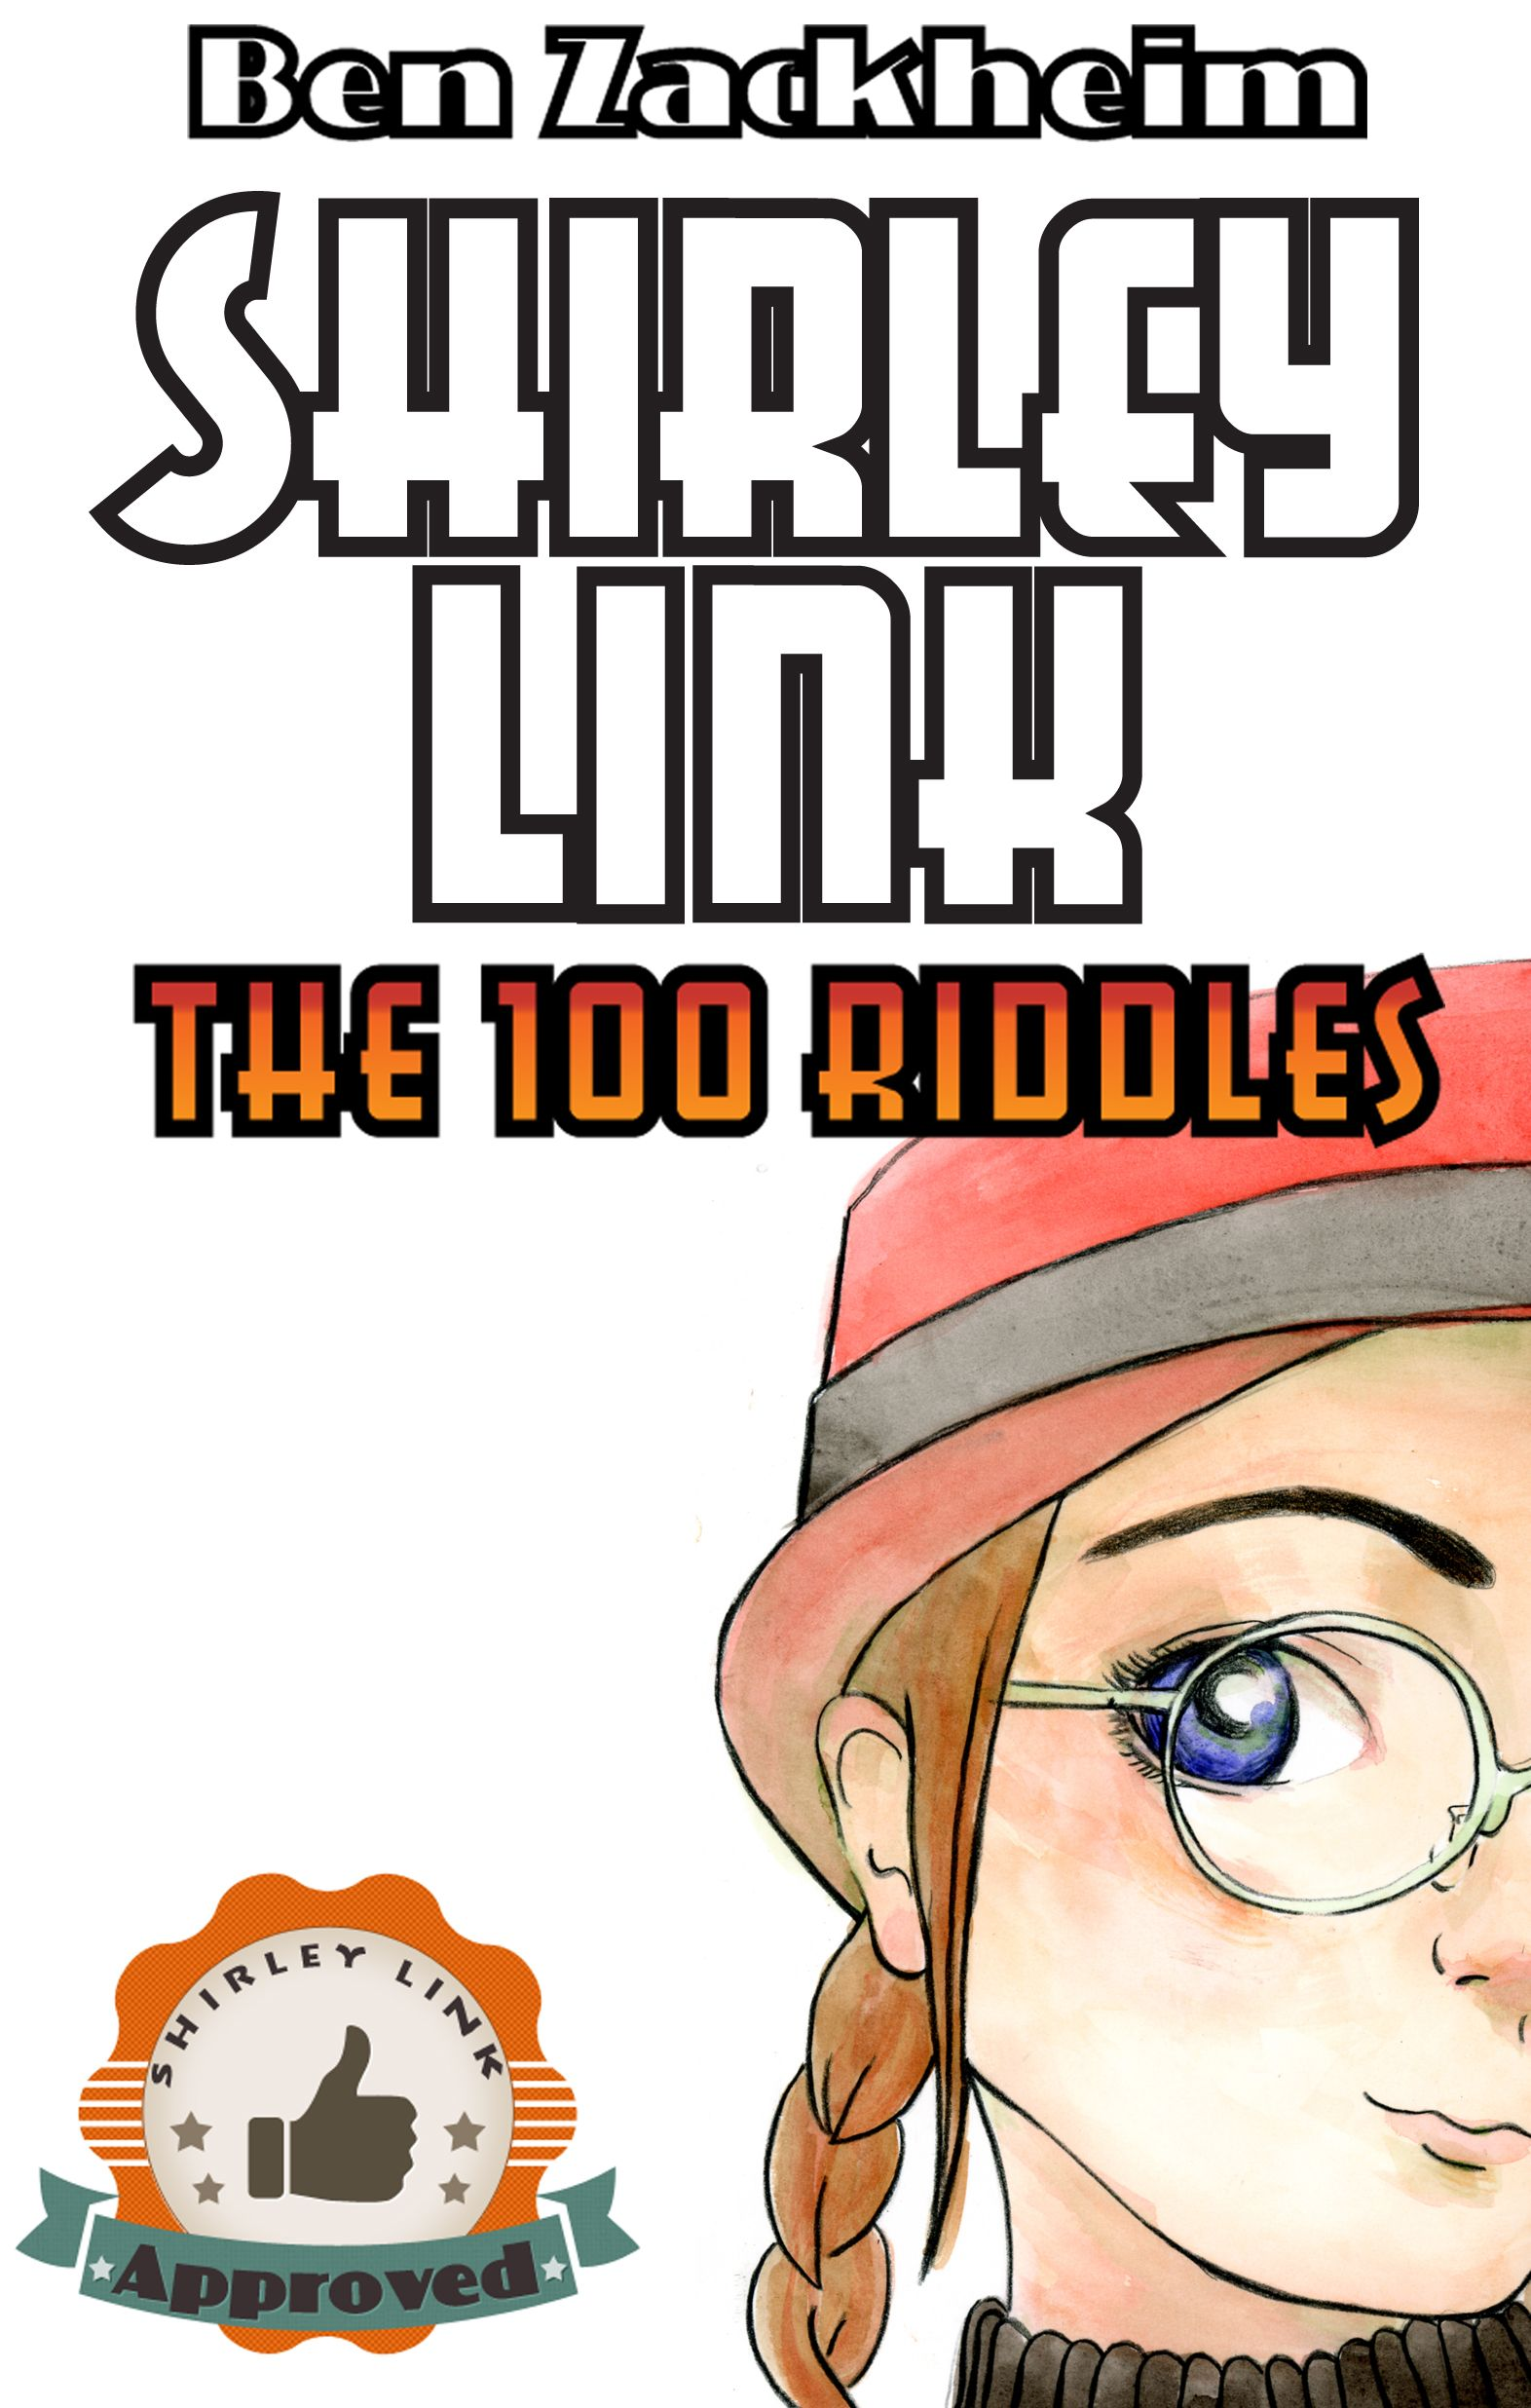 Coming 11/29/2013! Shirley Link & The 100 Riddles is the